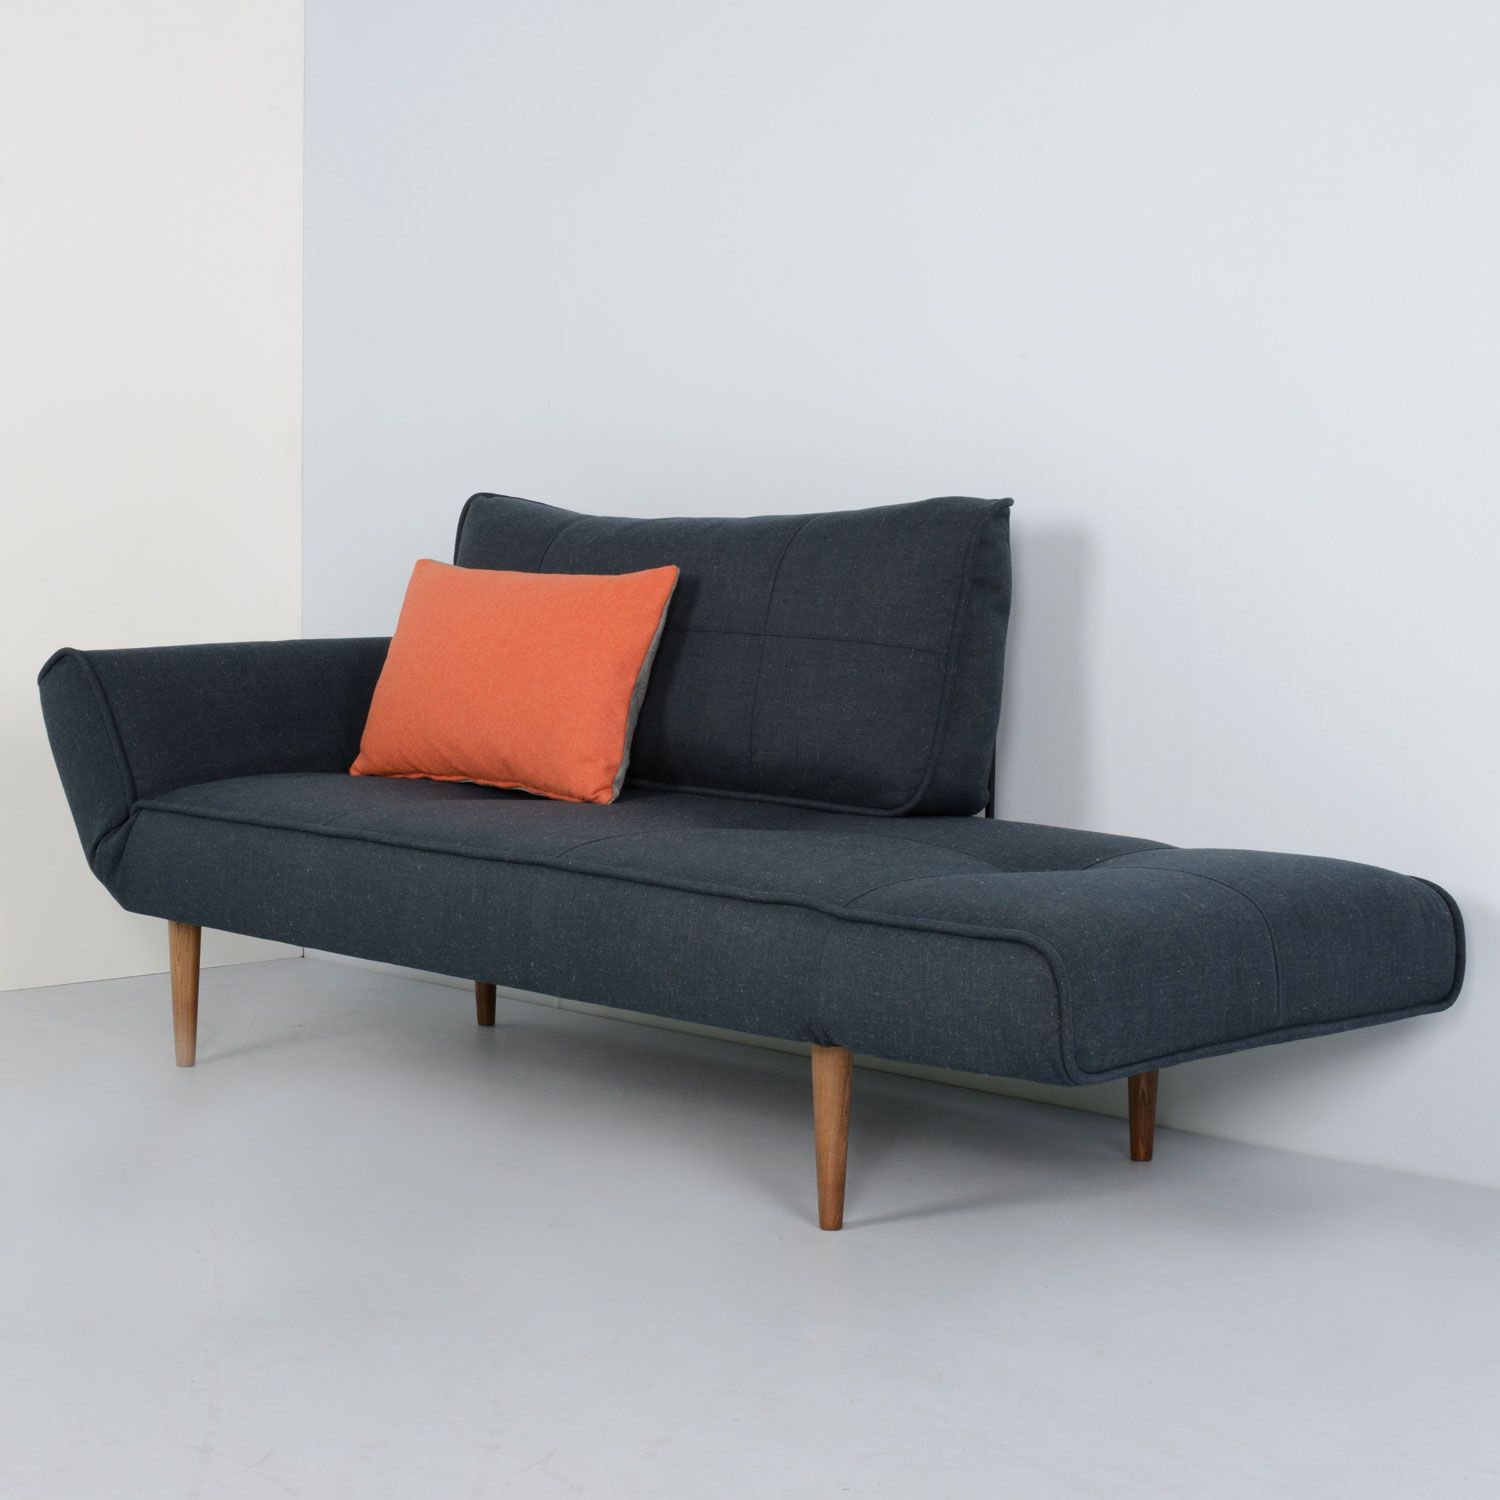 Per Weiss Sofa Bed Uk Ambrose Tilt Daybed By Per Weiss Sofabeds Sofas Furniture